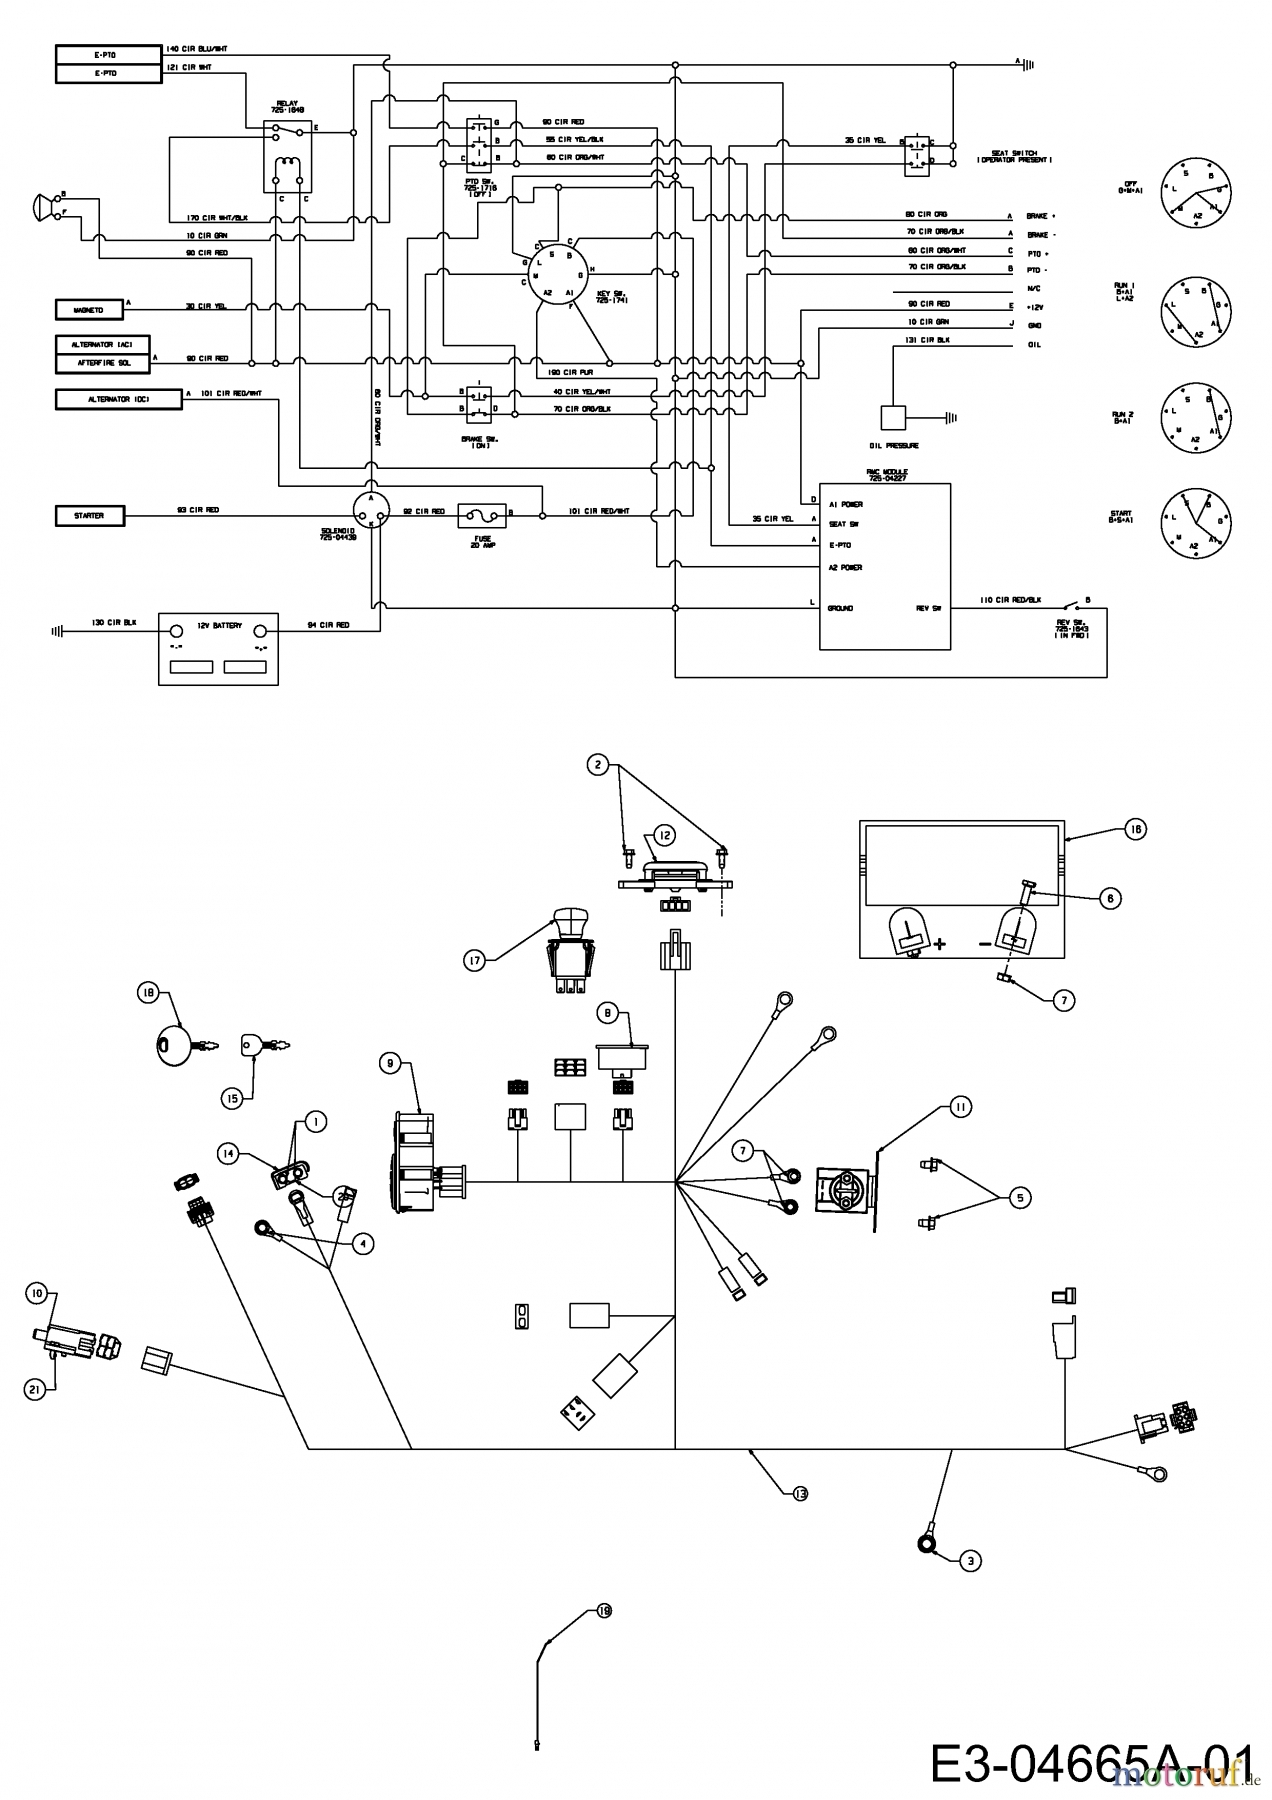 Wiring Diagram For Cub Cadet Z Force : Cub cadet wiring diagram pto